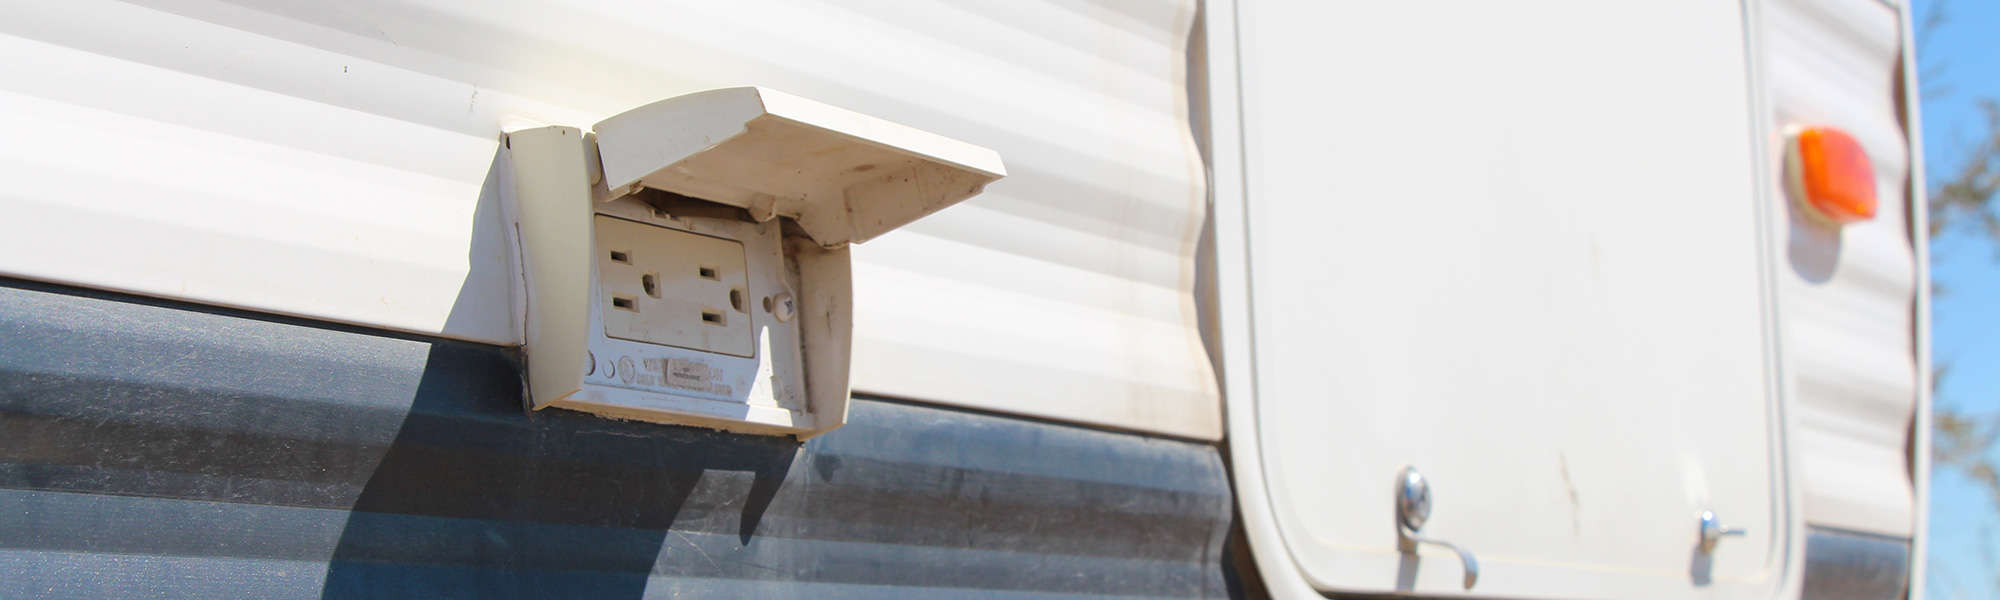 rv-life-hack-6-things-you-can-do-to-fix-a-broken-rv-outlet